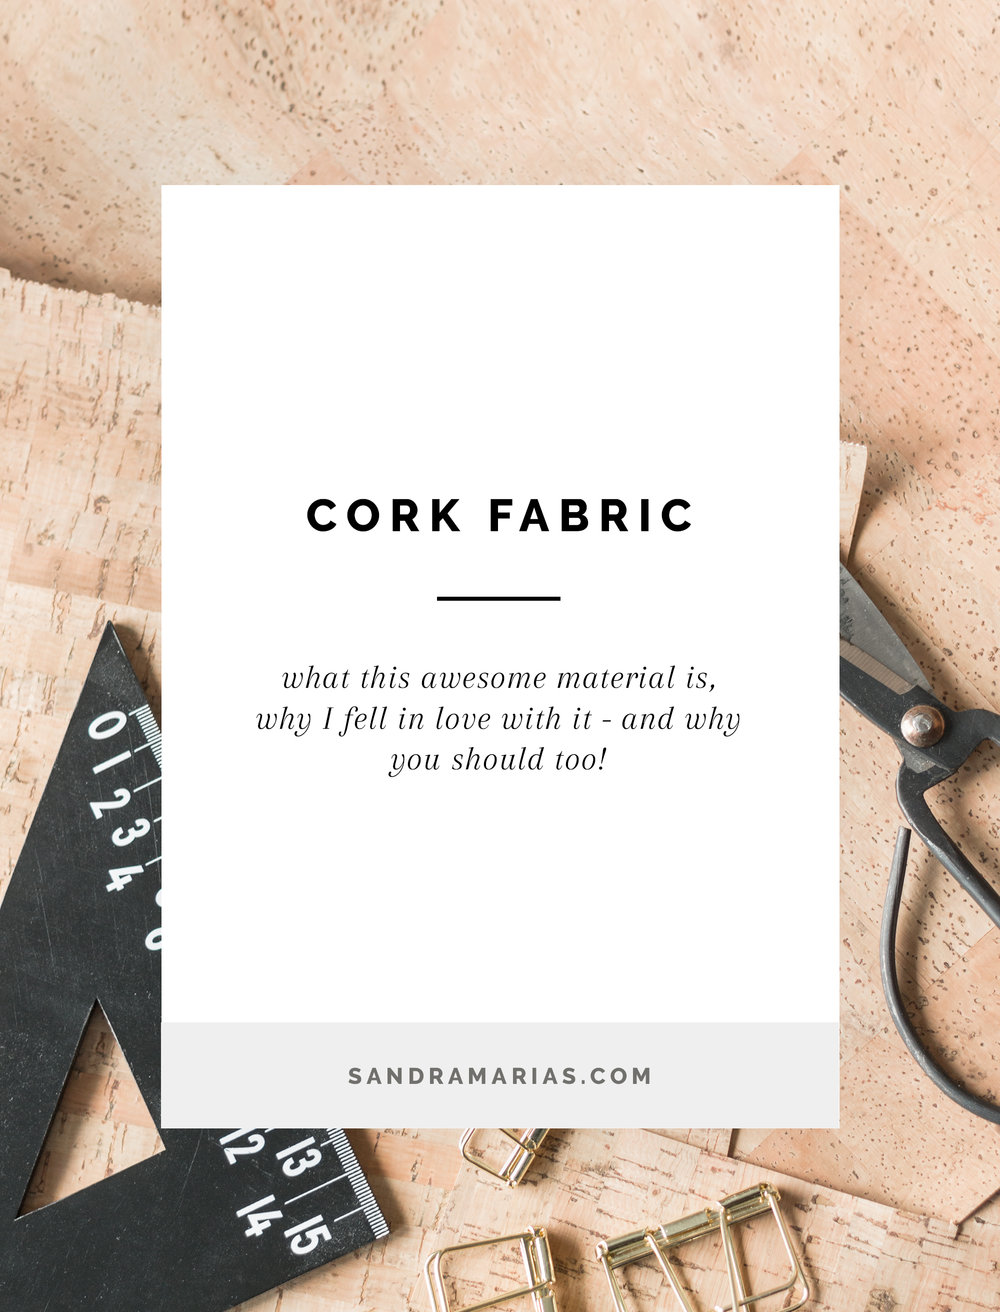 What is Cork Fabric? Why I Fell in Love With it - and Why You Should too!   By Sandramaria   Sandramarias.com